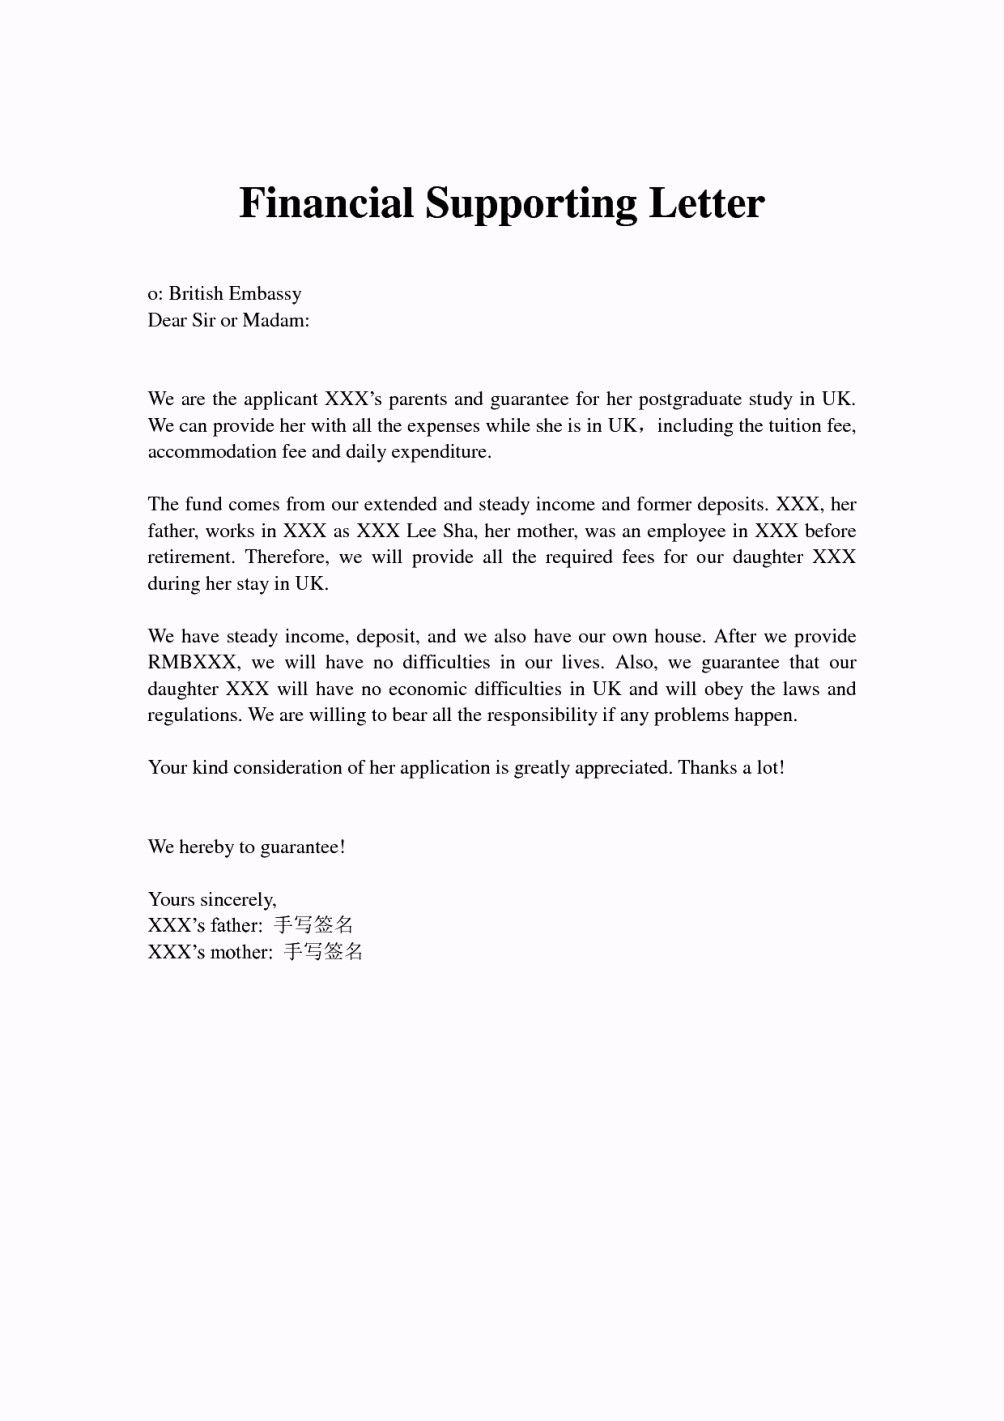 Financial Support Letter From Parents